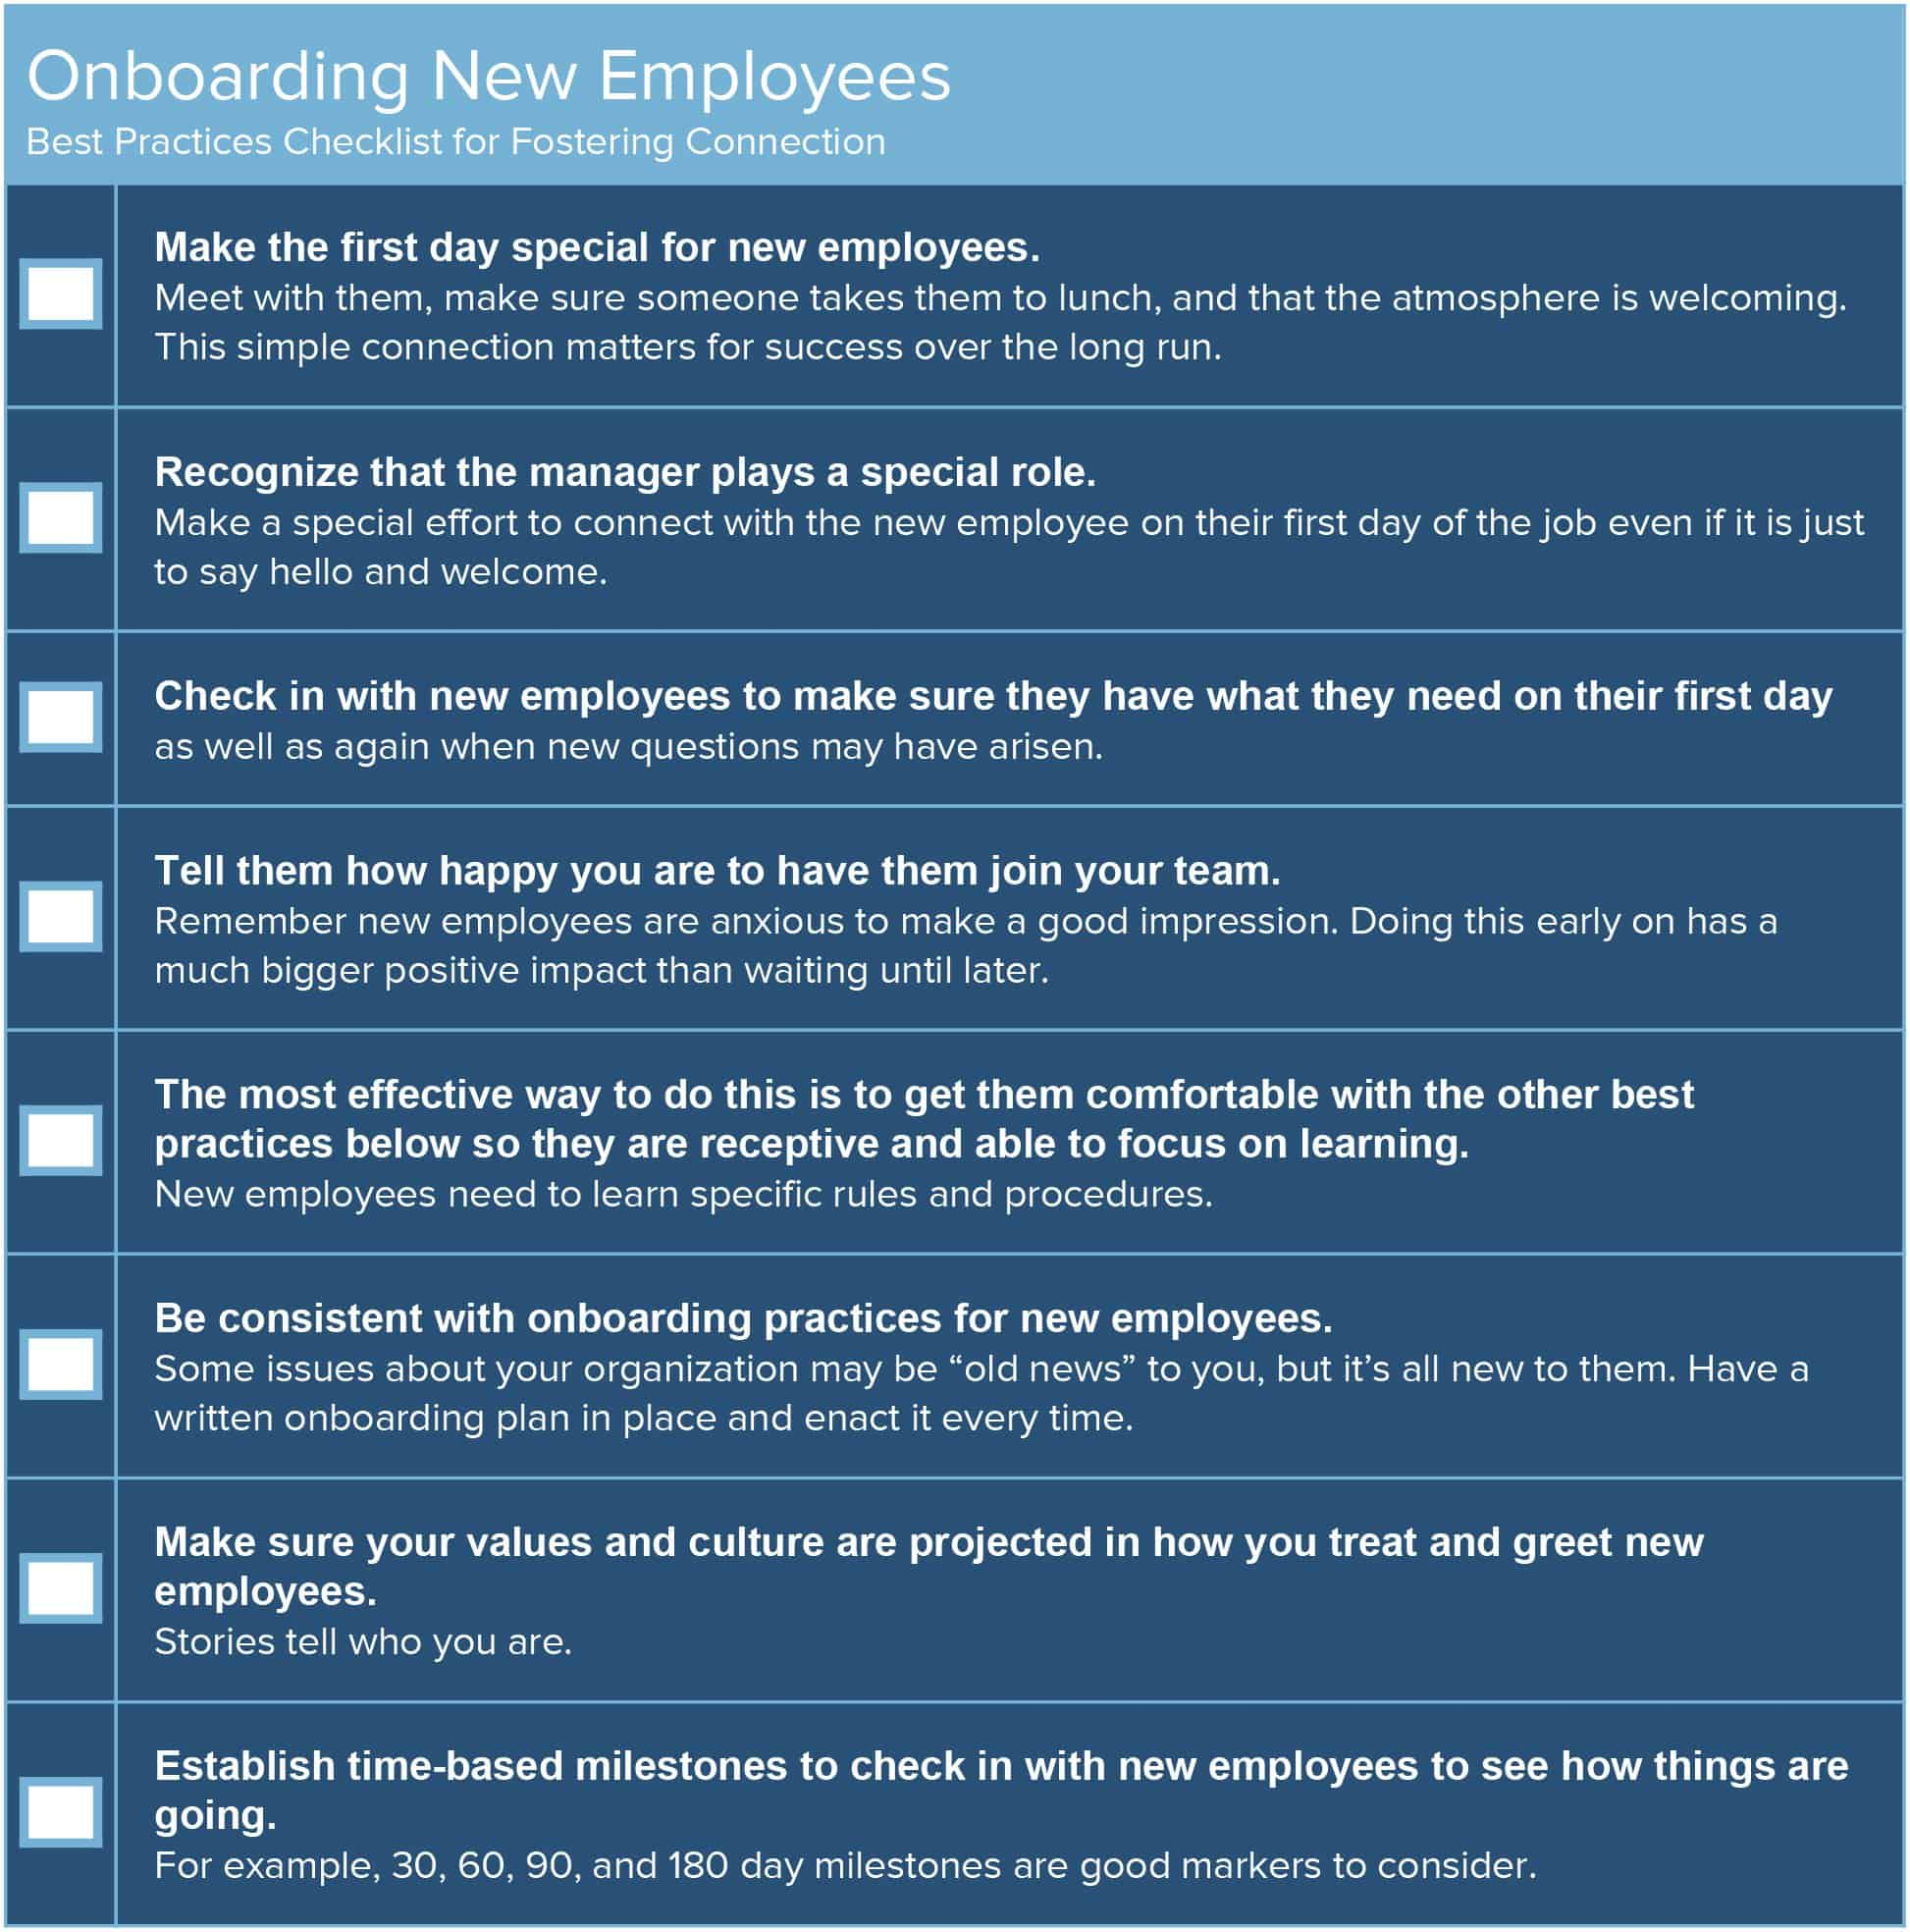 employee onboarding guide from hr experts smartsheet. Black Bedroom Furniture Sets. Home Design Ideas